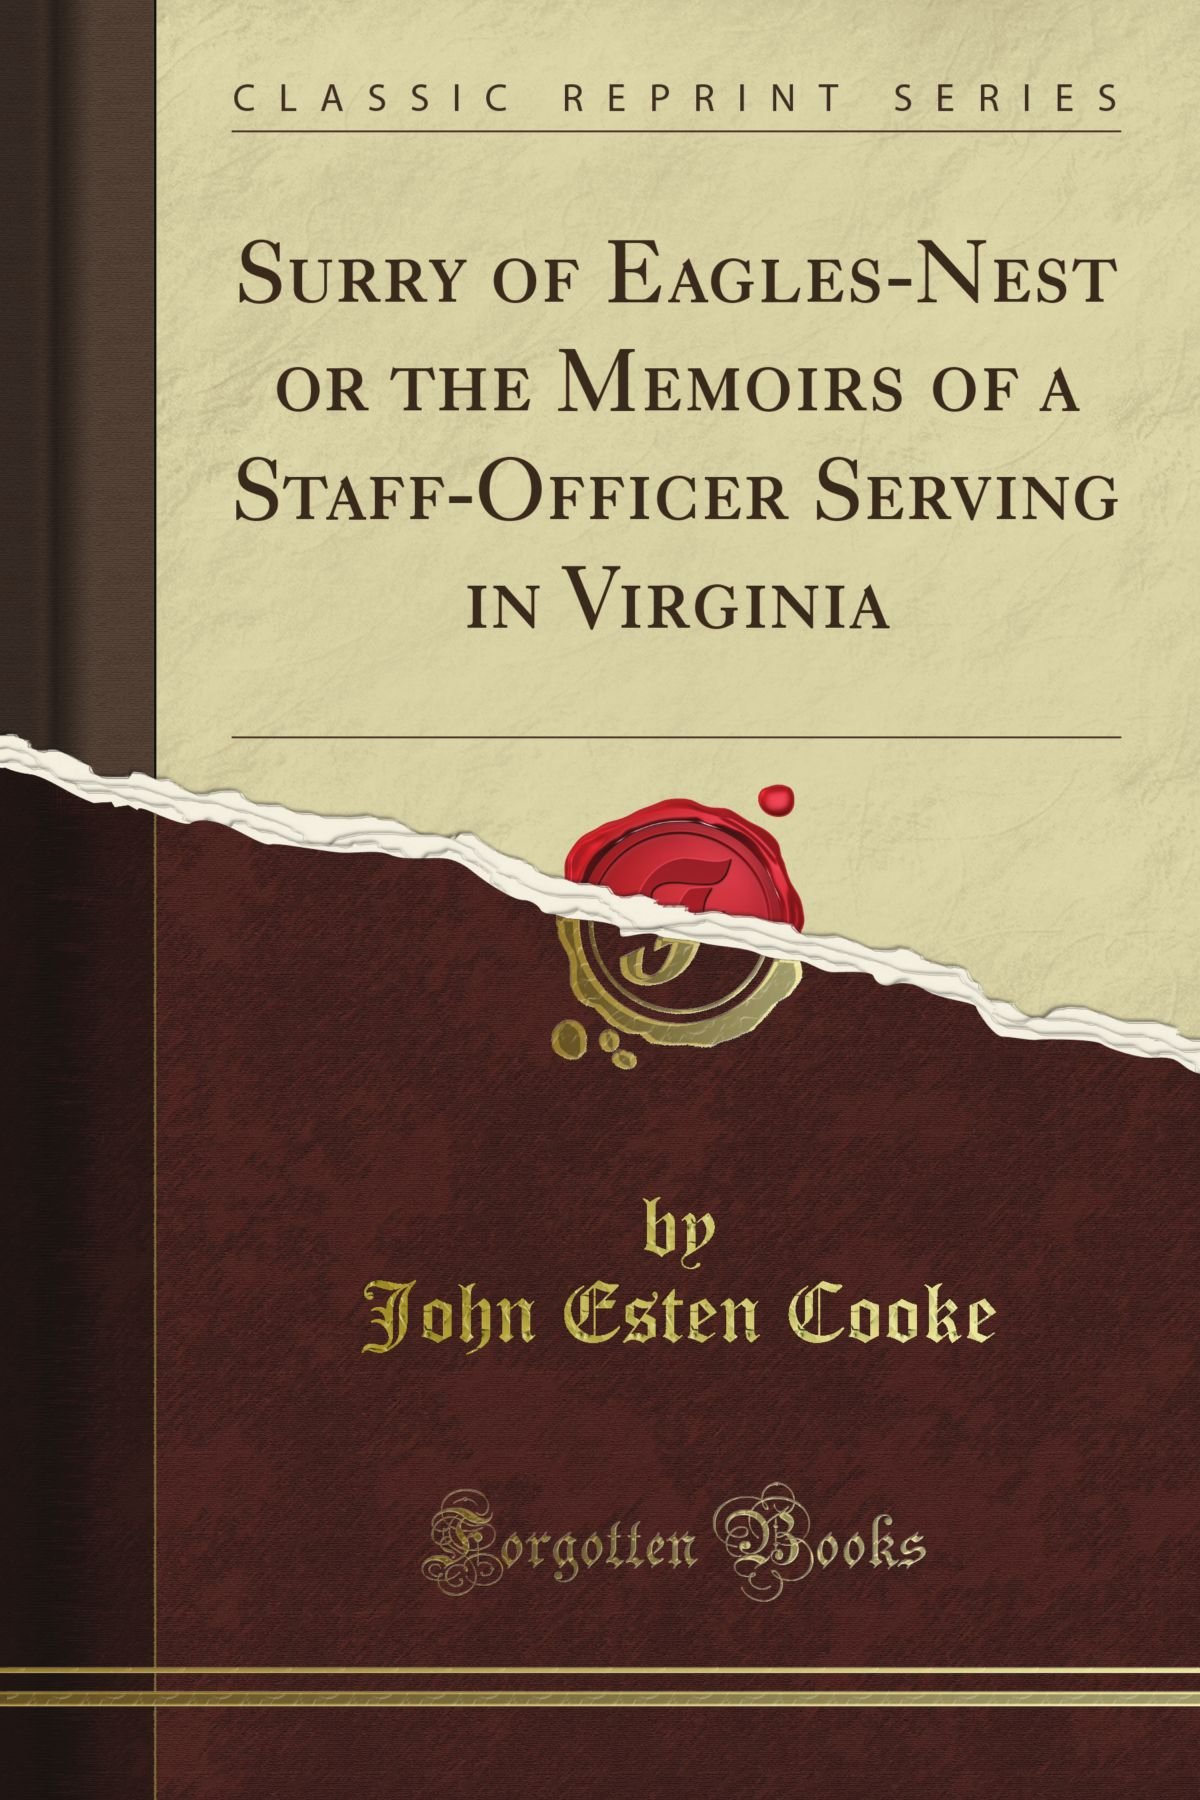 Surry of Eagle's-Nest or the Memoirs of a Staff-Officer Serving in Virginia (Classic Reprint) pdf